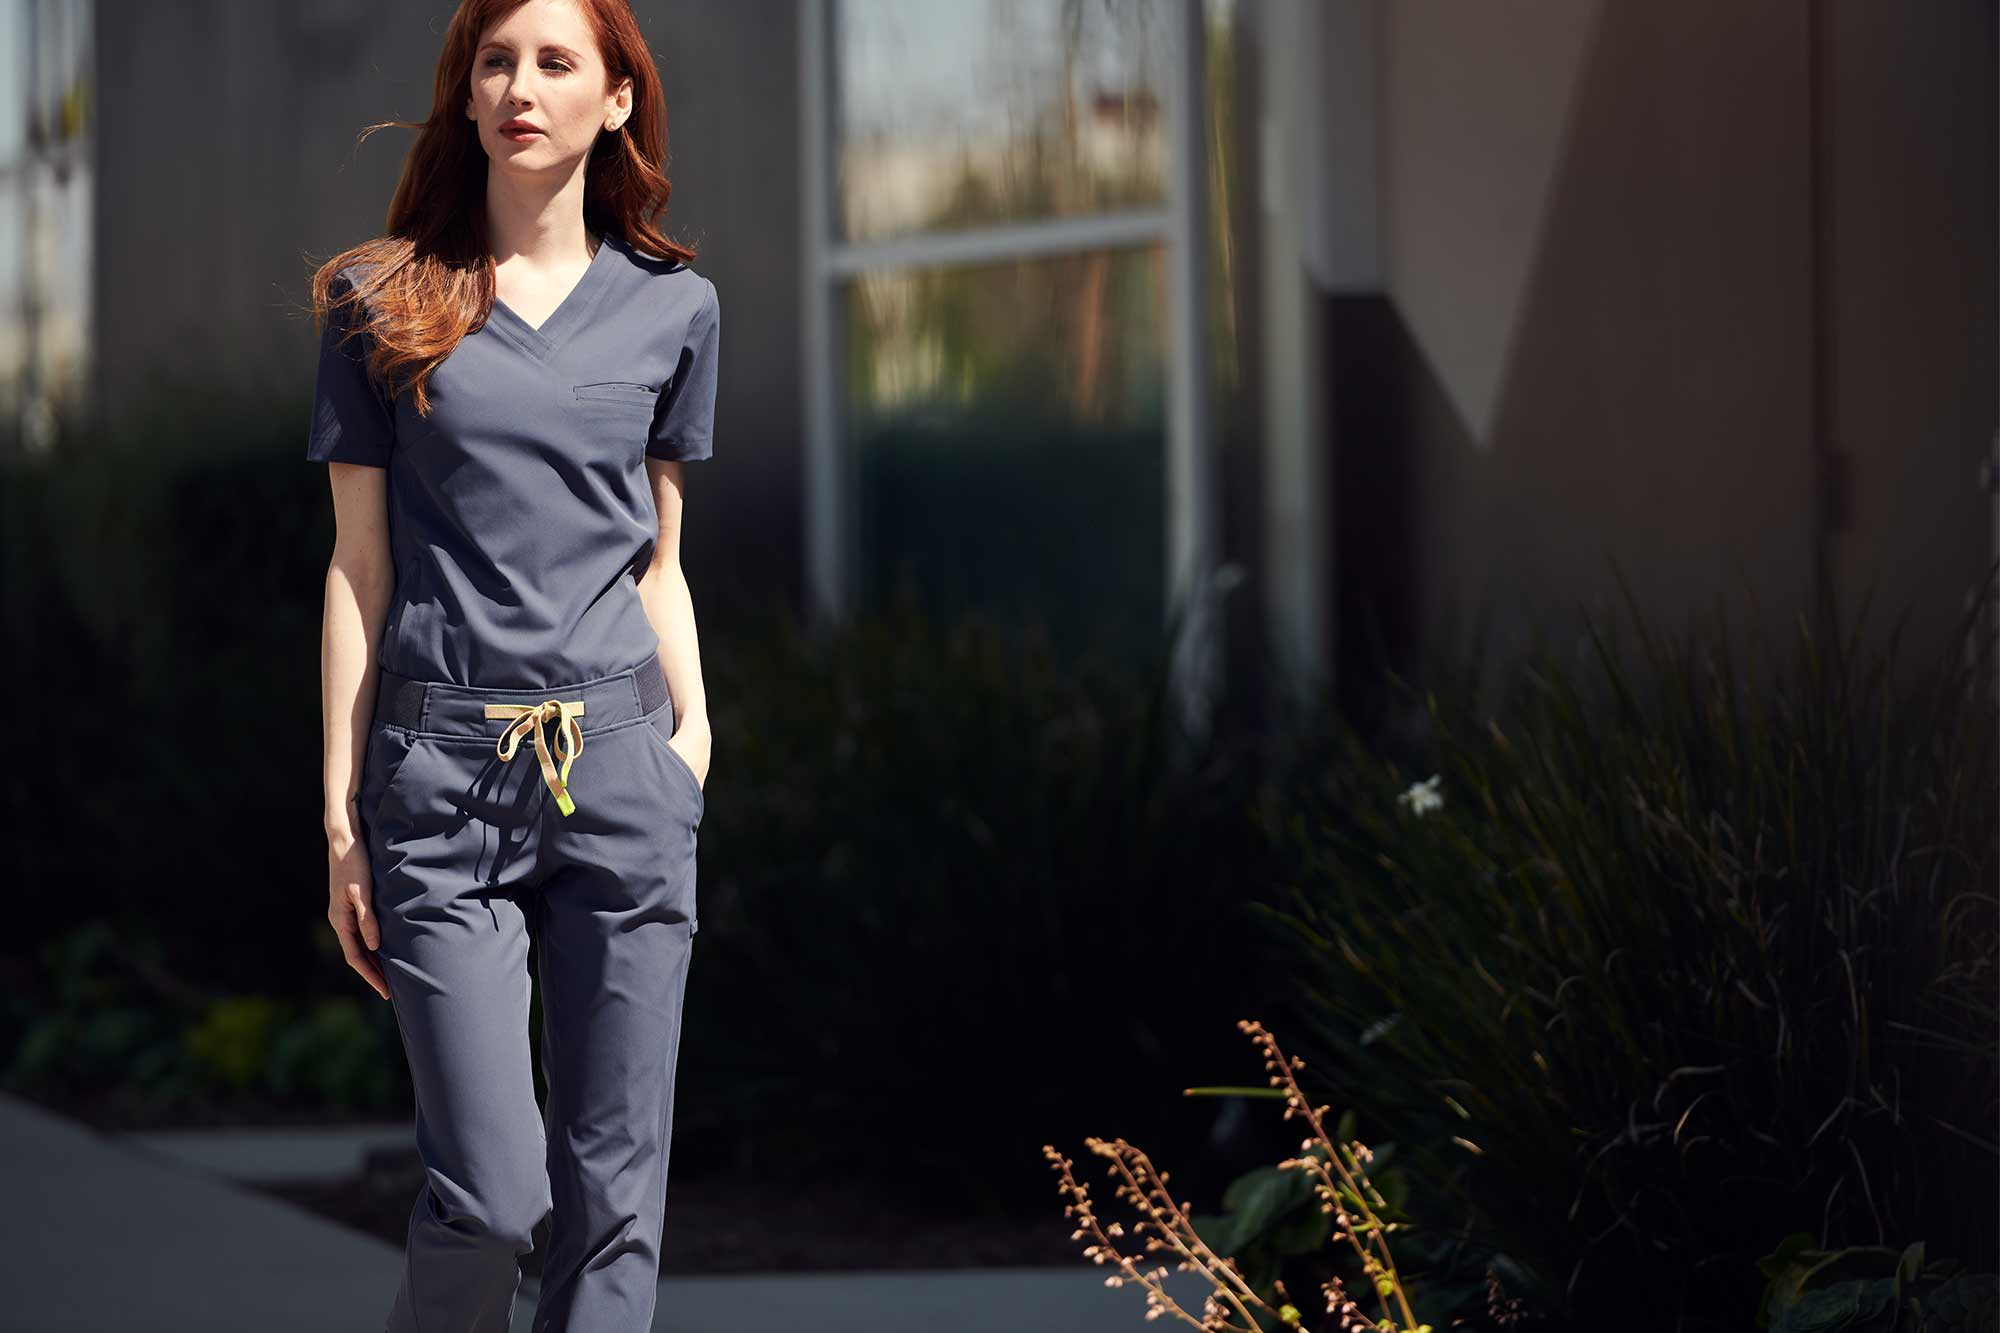 fc75f2c8607 How to Look and Feel Your Best in Scrubs | Medelita